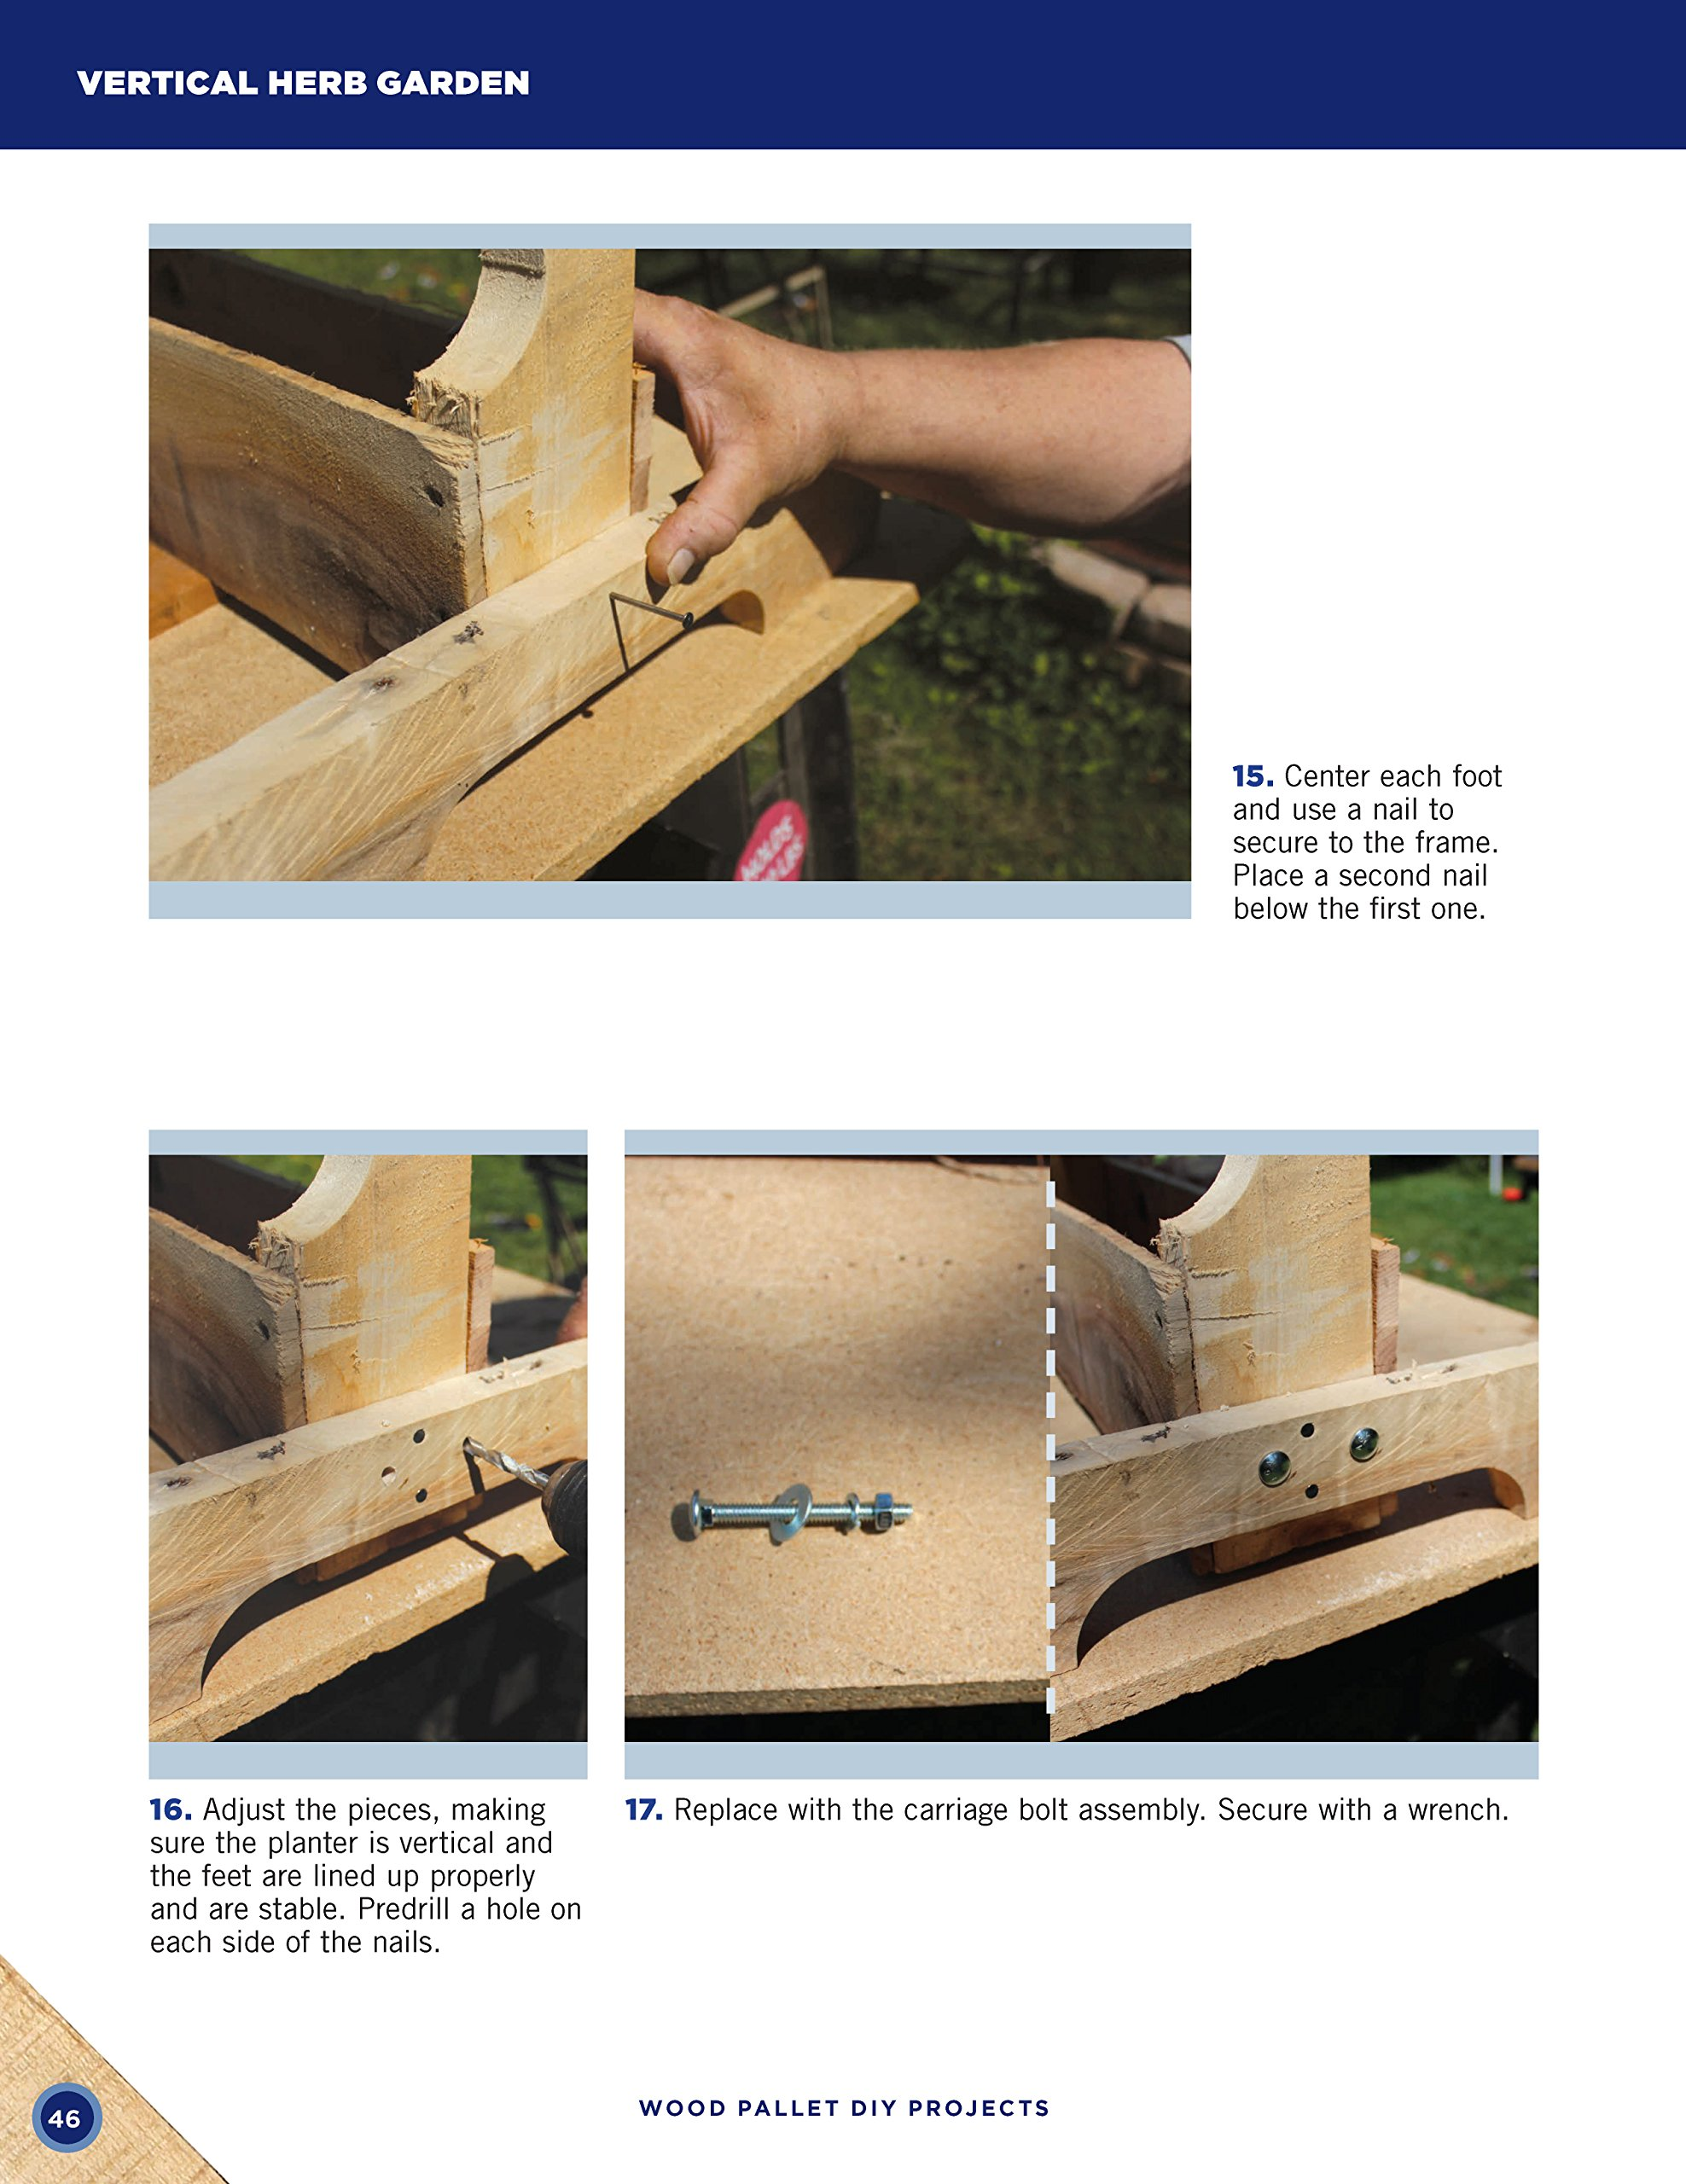 Wood Pallet Diy Projects 20 Building Projects To Enrich Your Home